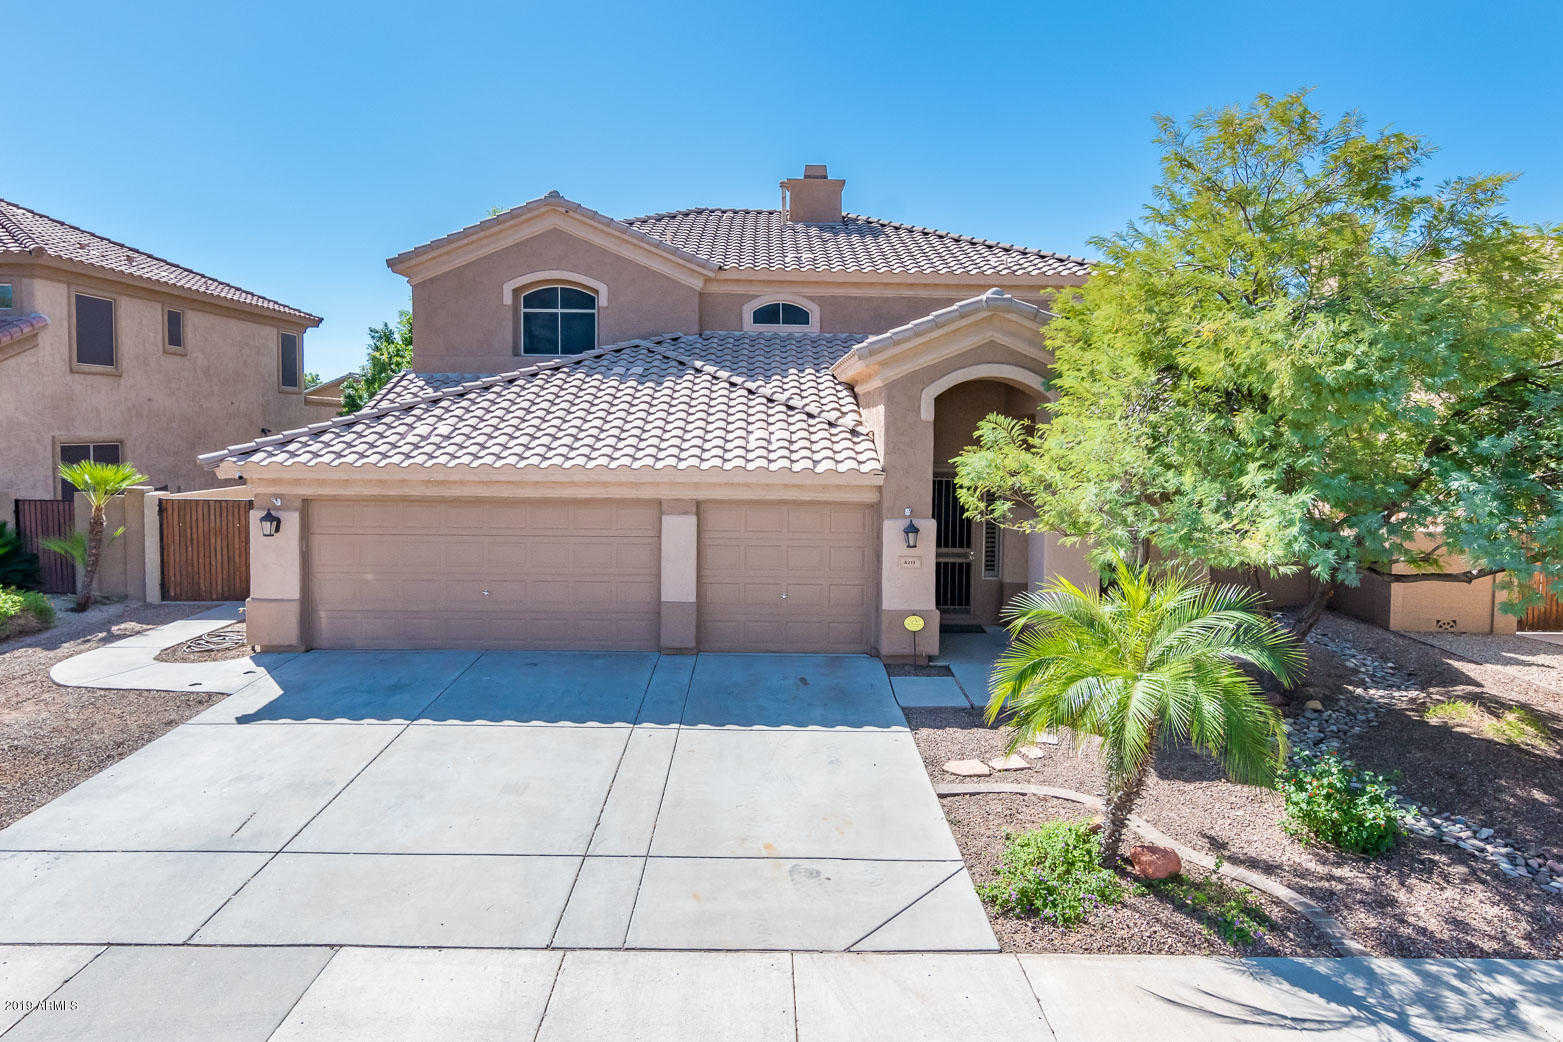 $435,900 - 5Br/4Ba - Home for Sale in Highlands At Arrowhead Ranch 3, Glendale